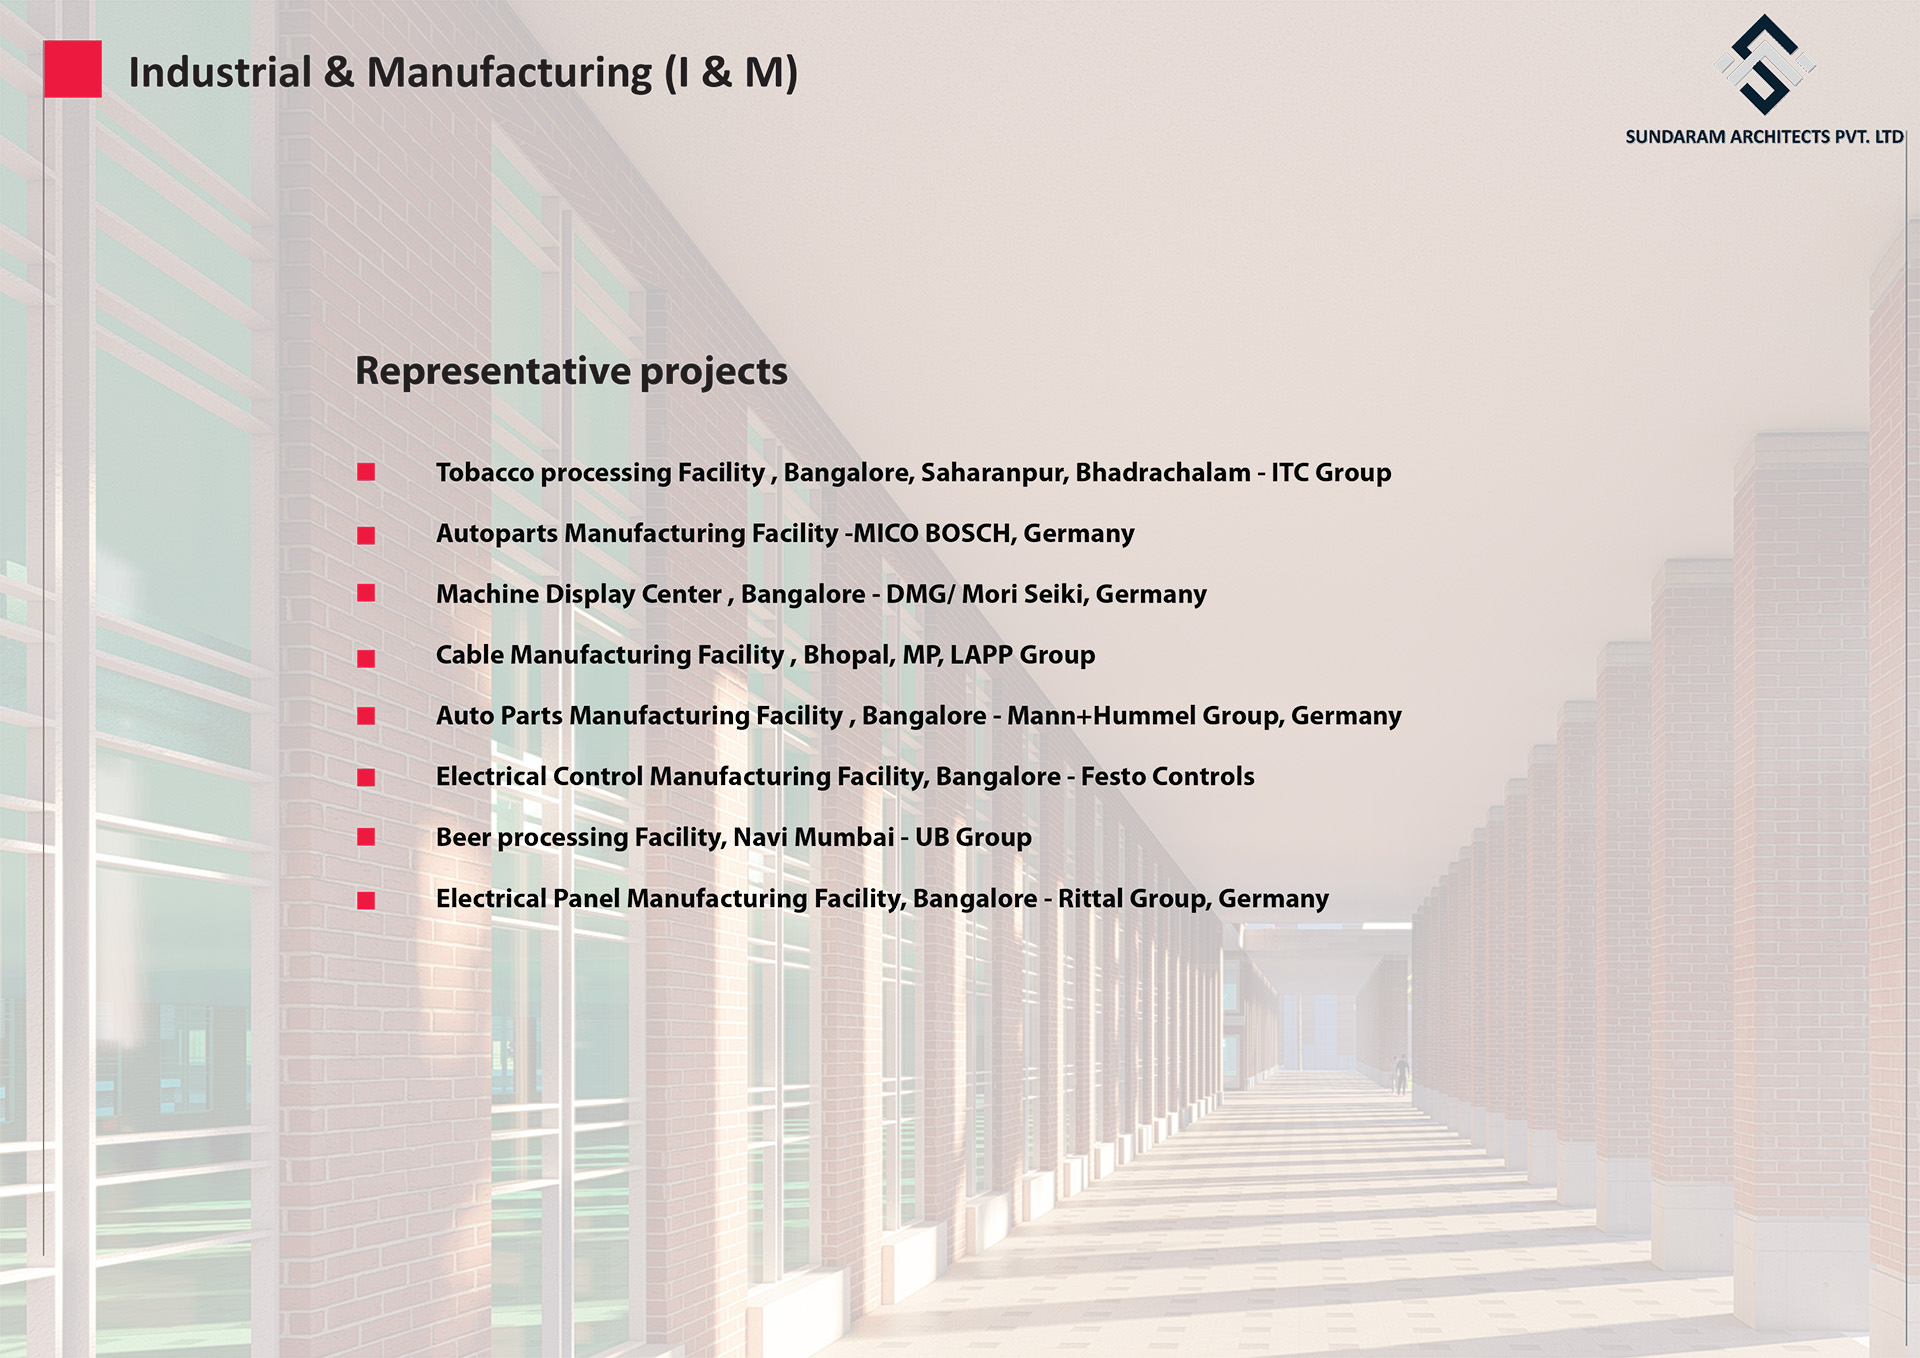 Industrial & Manufacturing projects which are well designed by Sundaram Architects